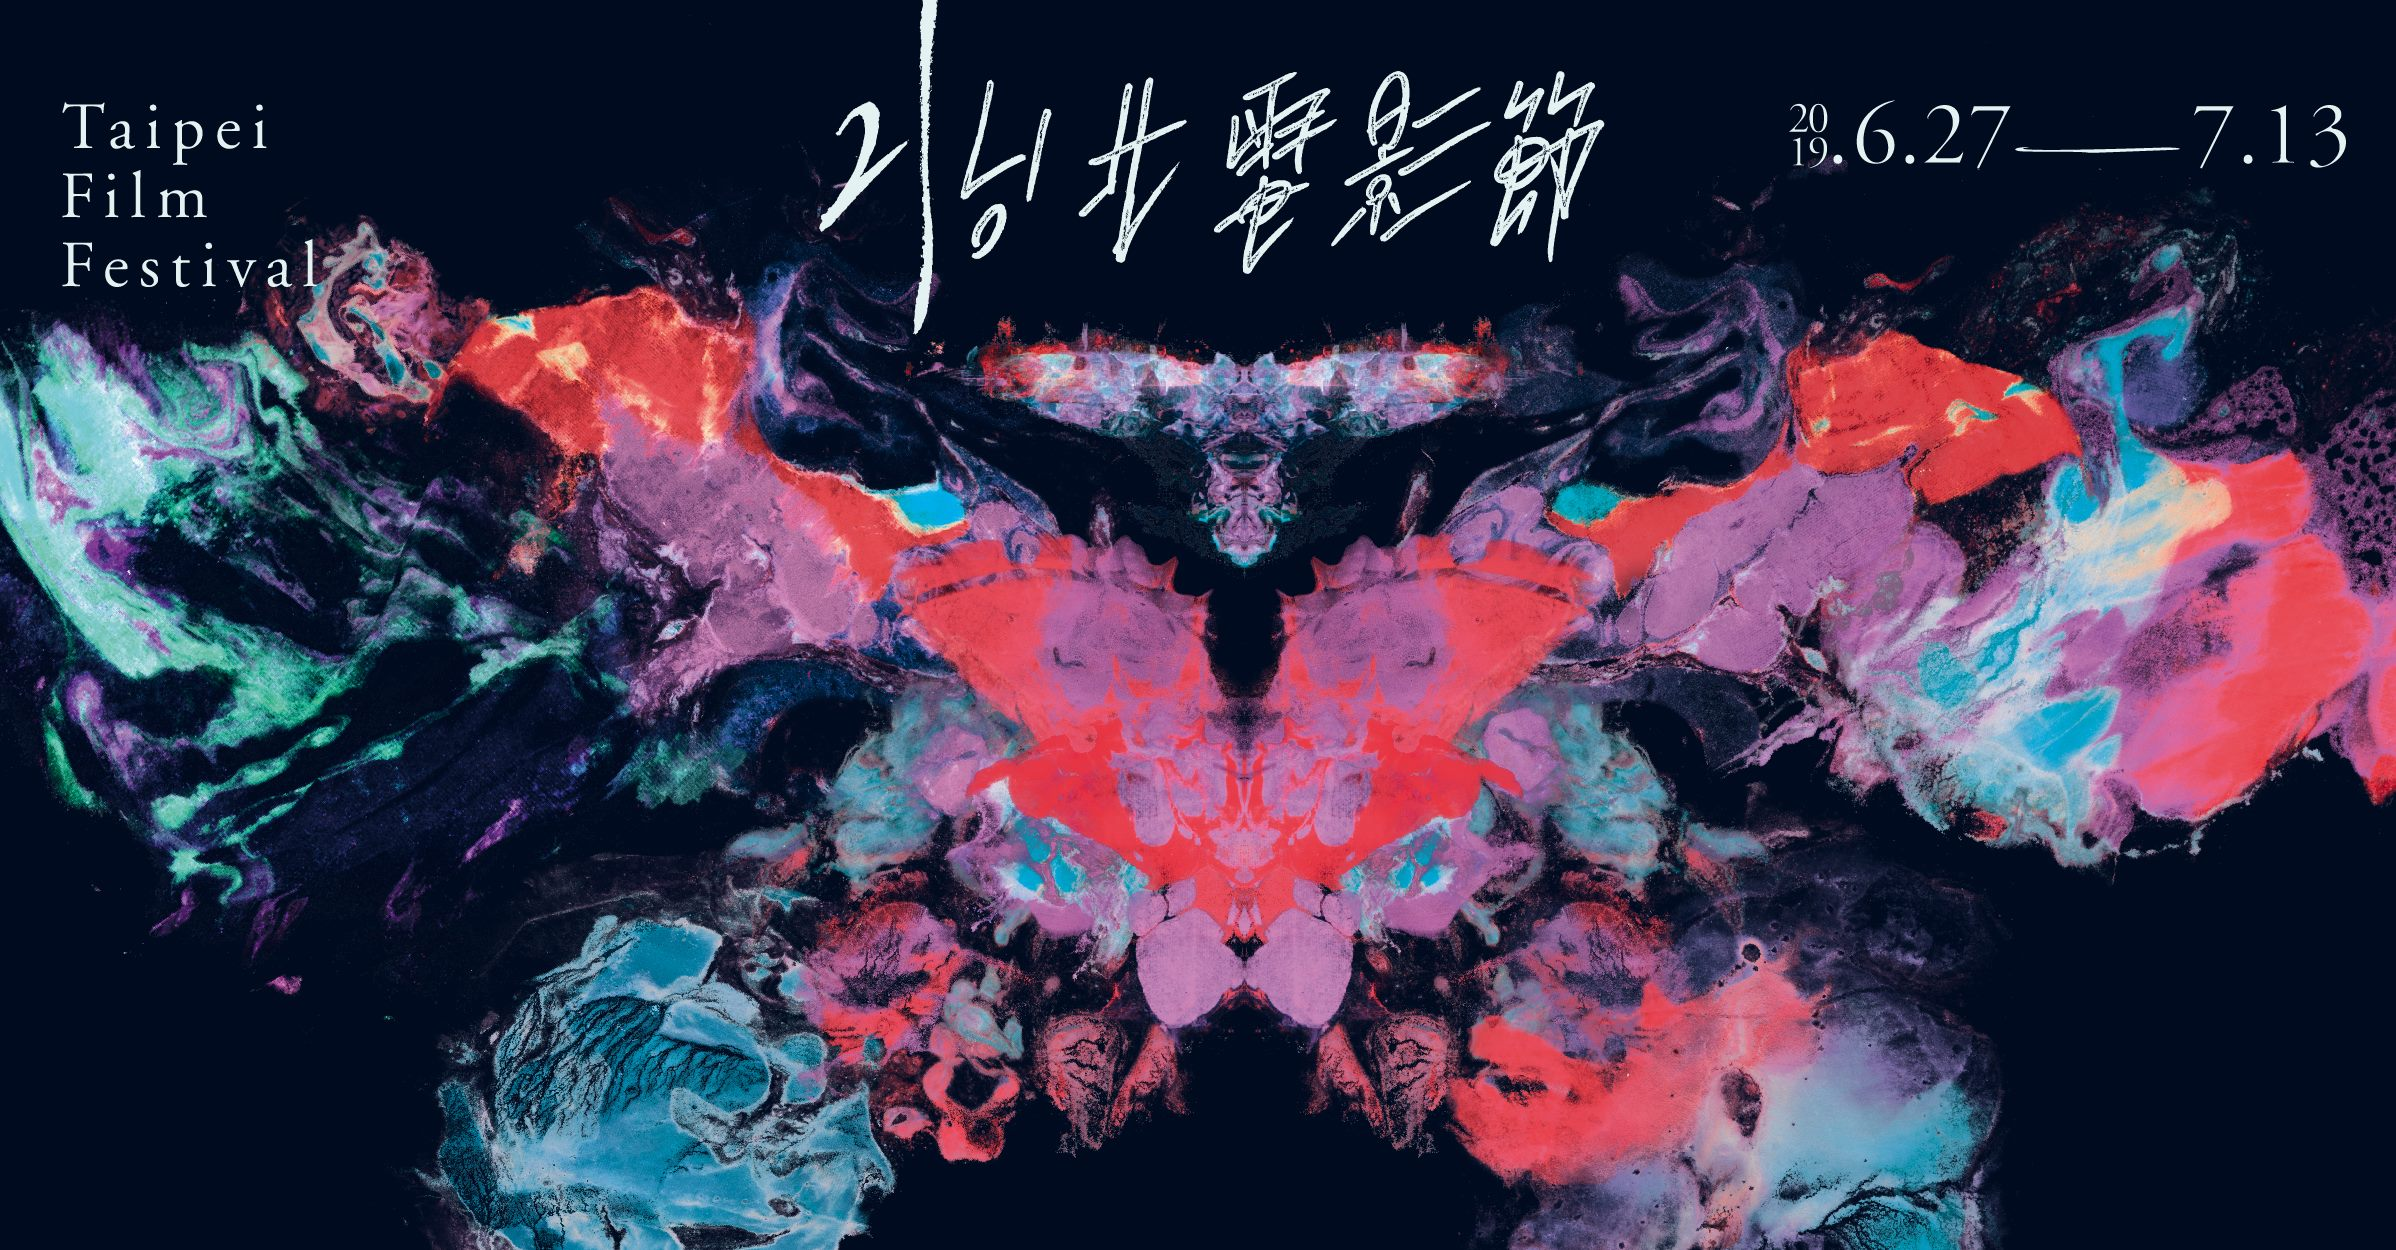 Introducing the 2019 Taipei Film Festival